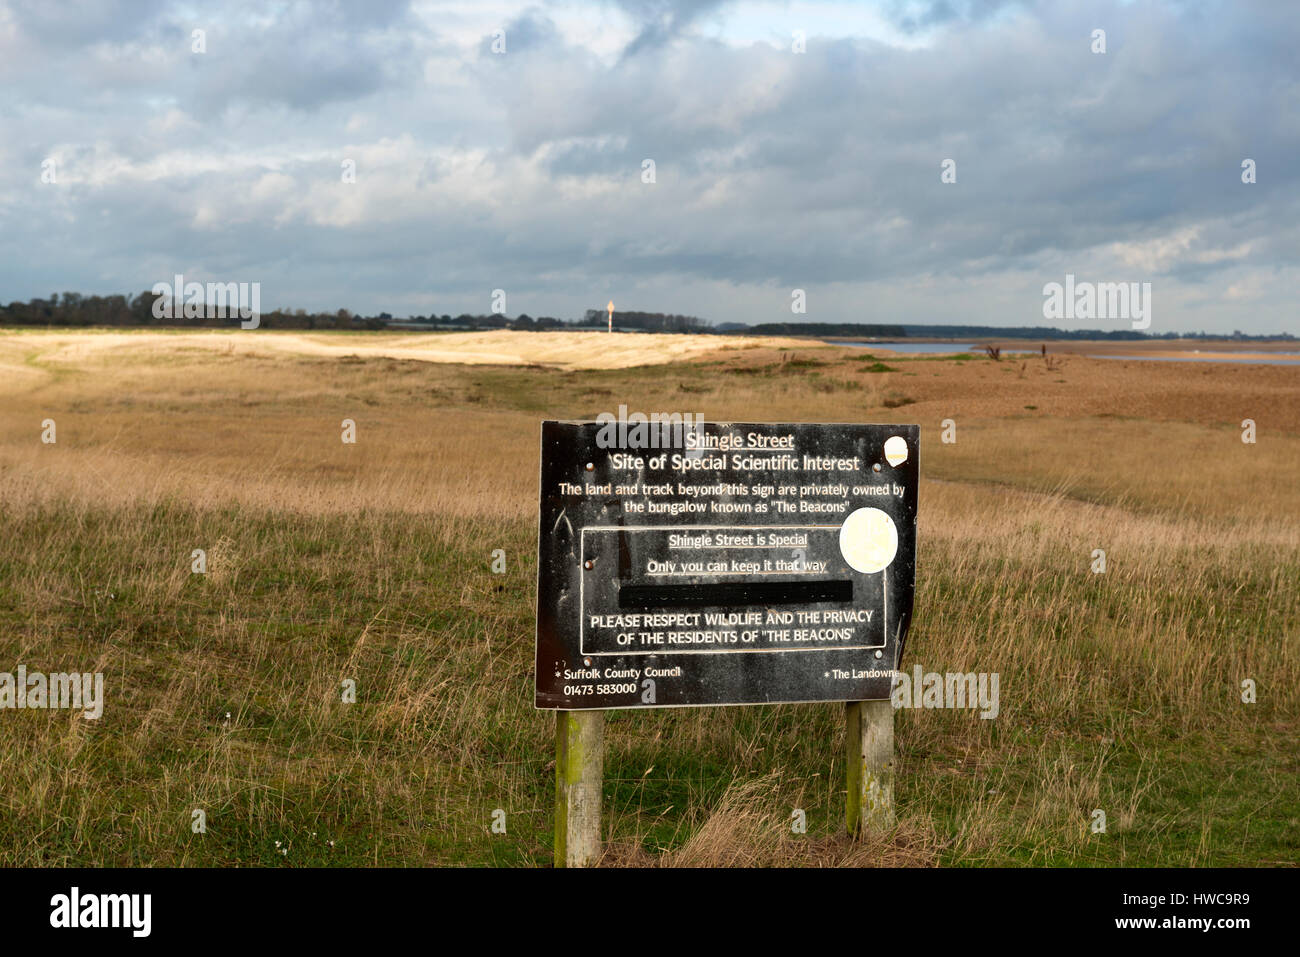 Shingle Street Site of Special Scientific Interest (SSSI) Suffolk, UK. - Stock Image